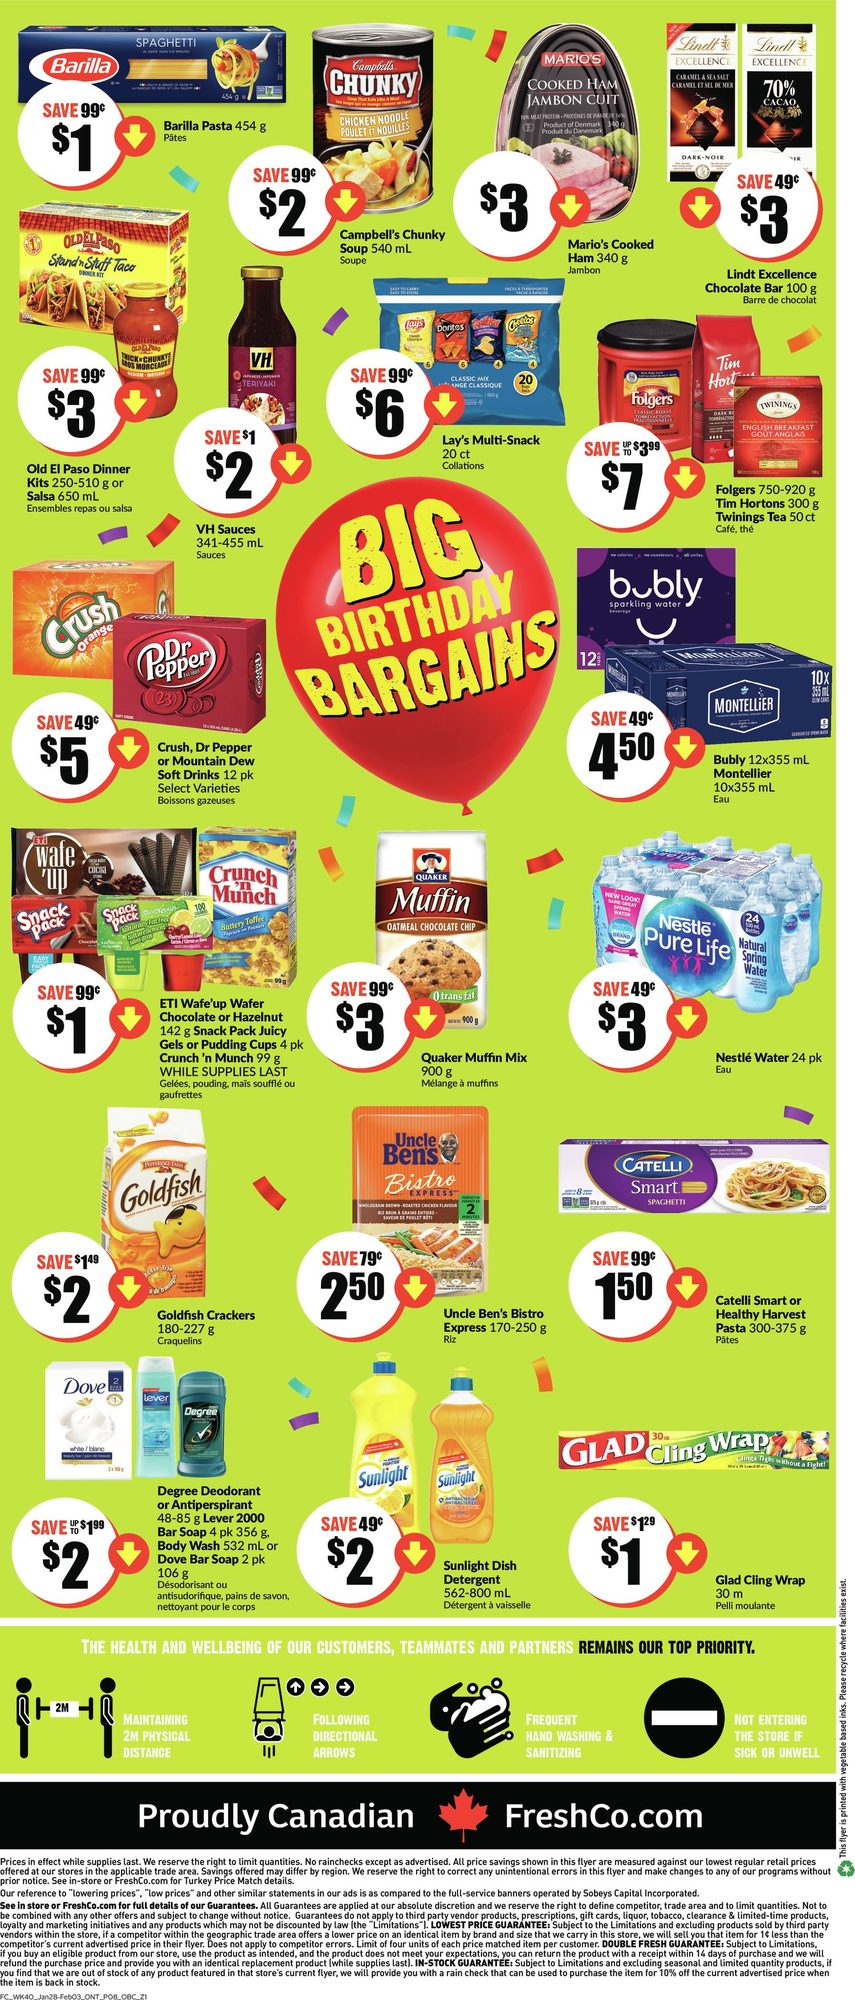 FreshCo - Weekly Flyer Specials - Page 8